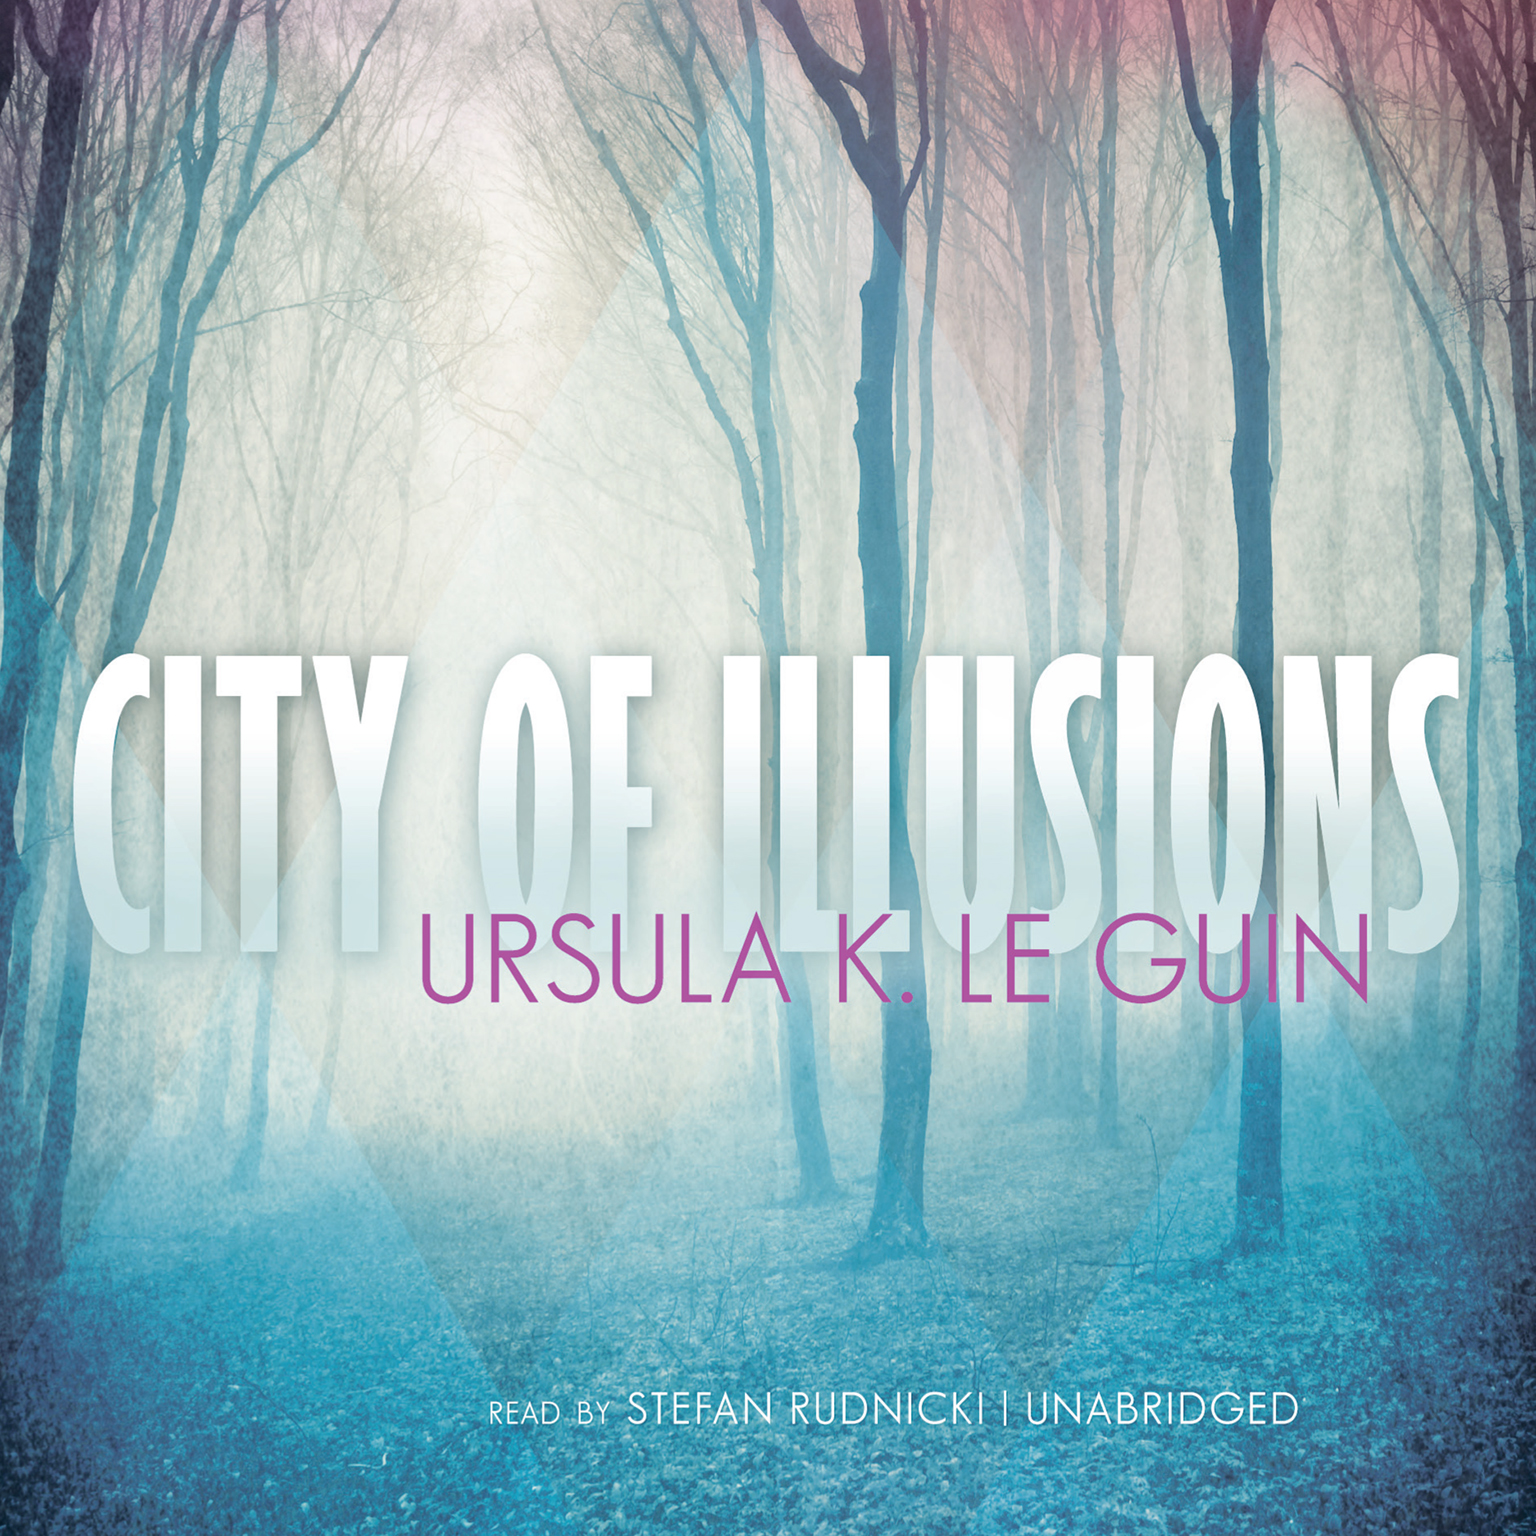 Printable City of Illusions Audiobook Cover Art